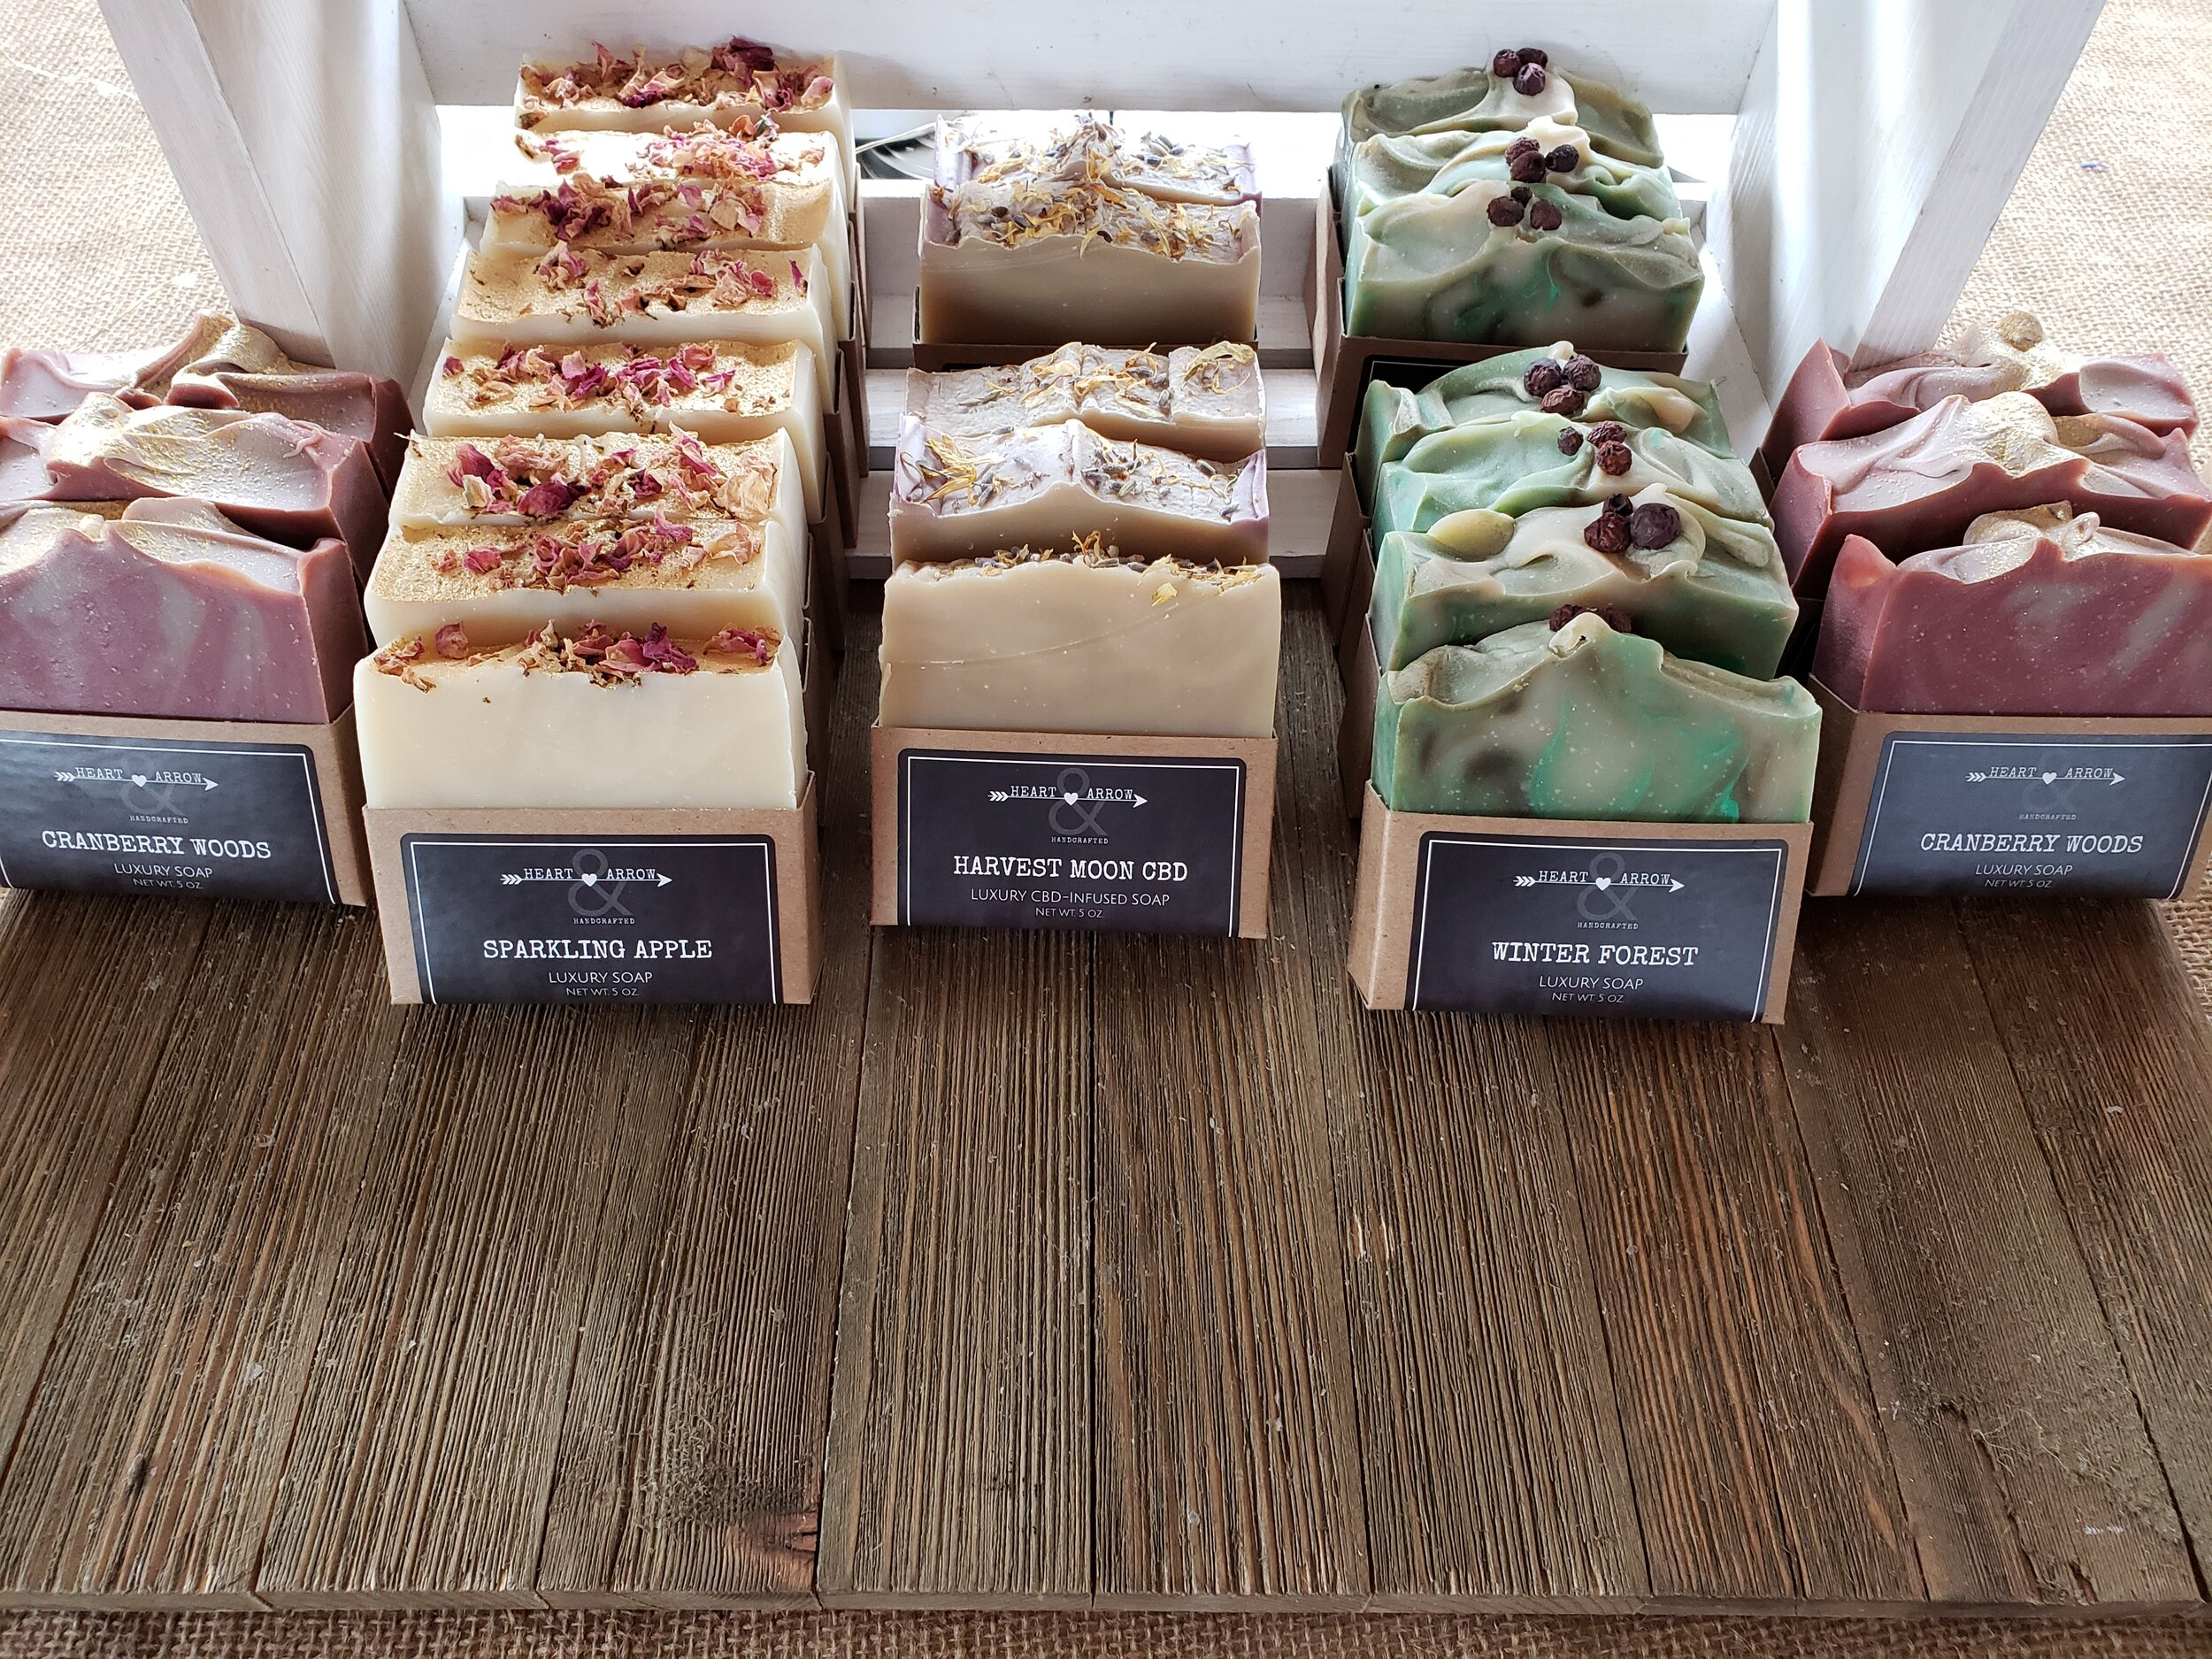 Holiday Soaps Are Here! - SHOP THE HOLIDAY COLLECTION NOW